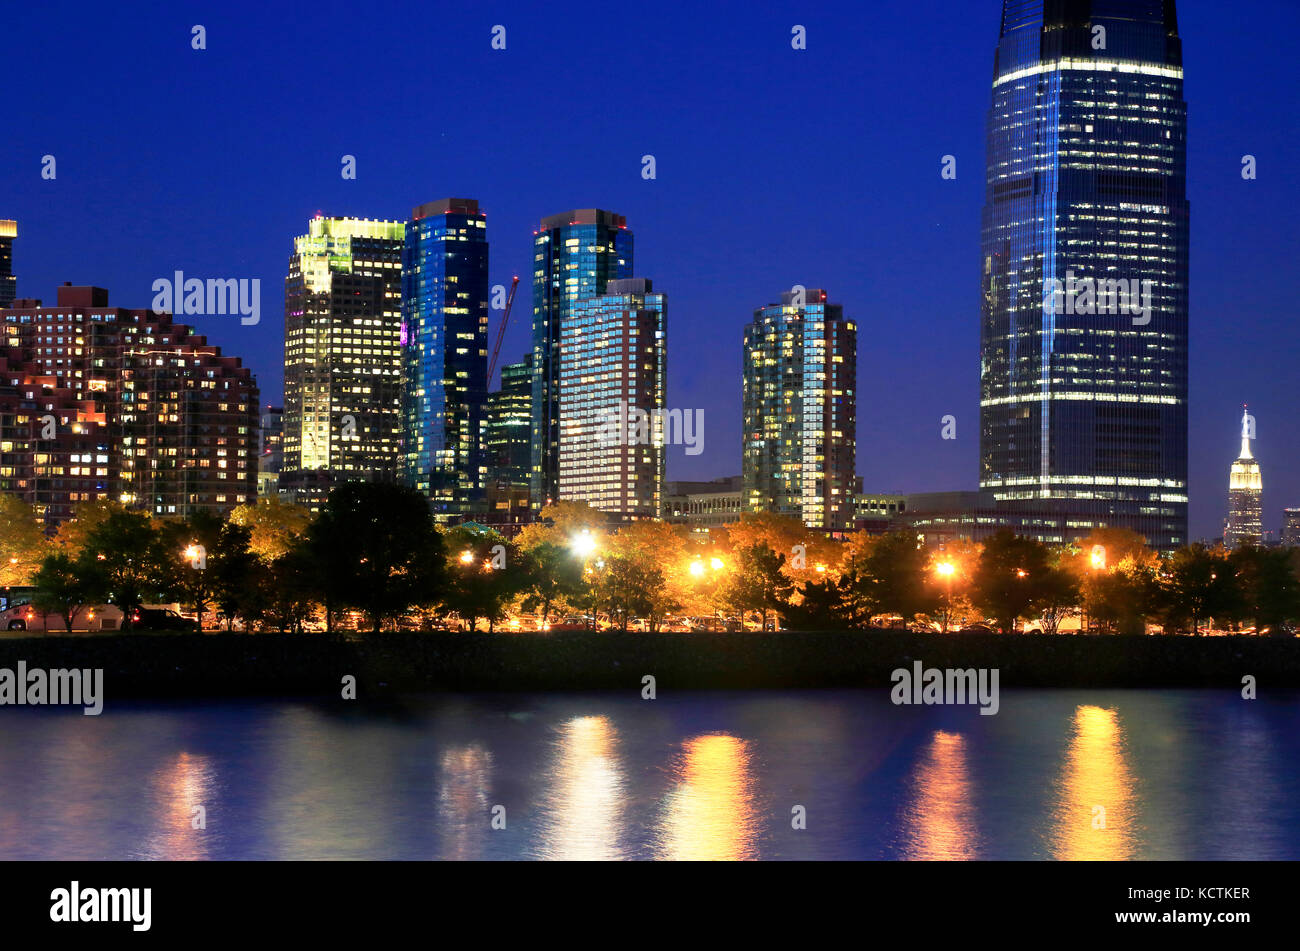 Night view of Jersey City skyline with Goldman Sachs &Co Tower and Manhattan skyline in the background.New Jersey.USA - Stock Image